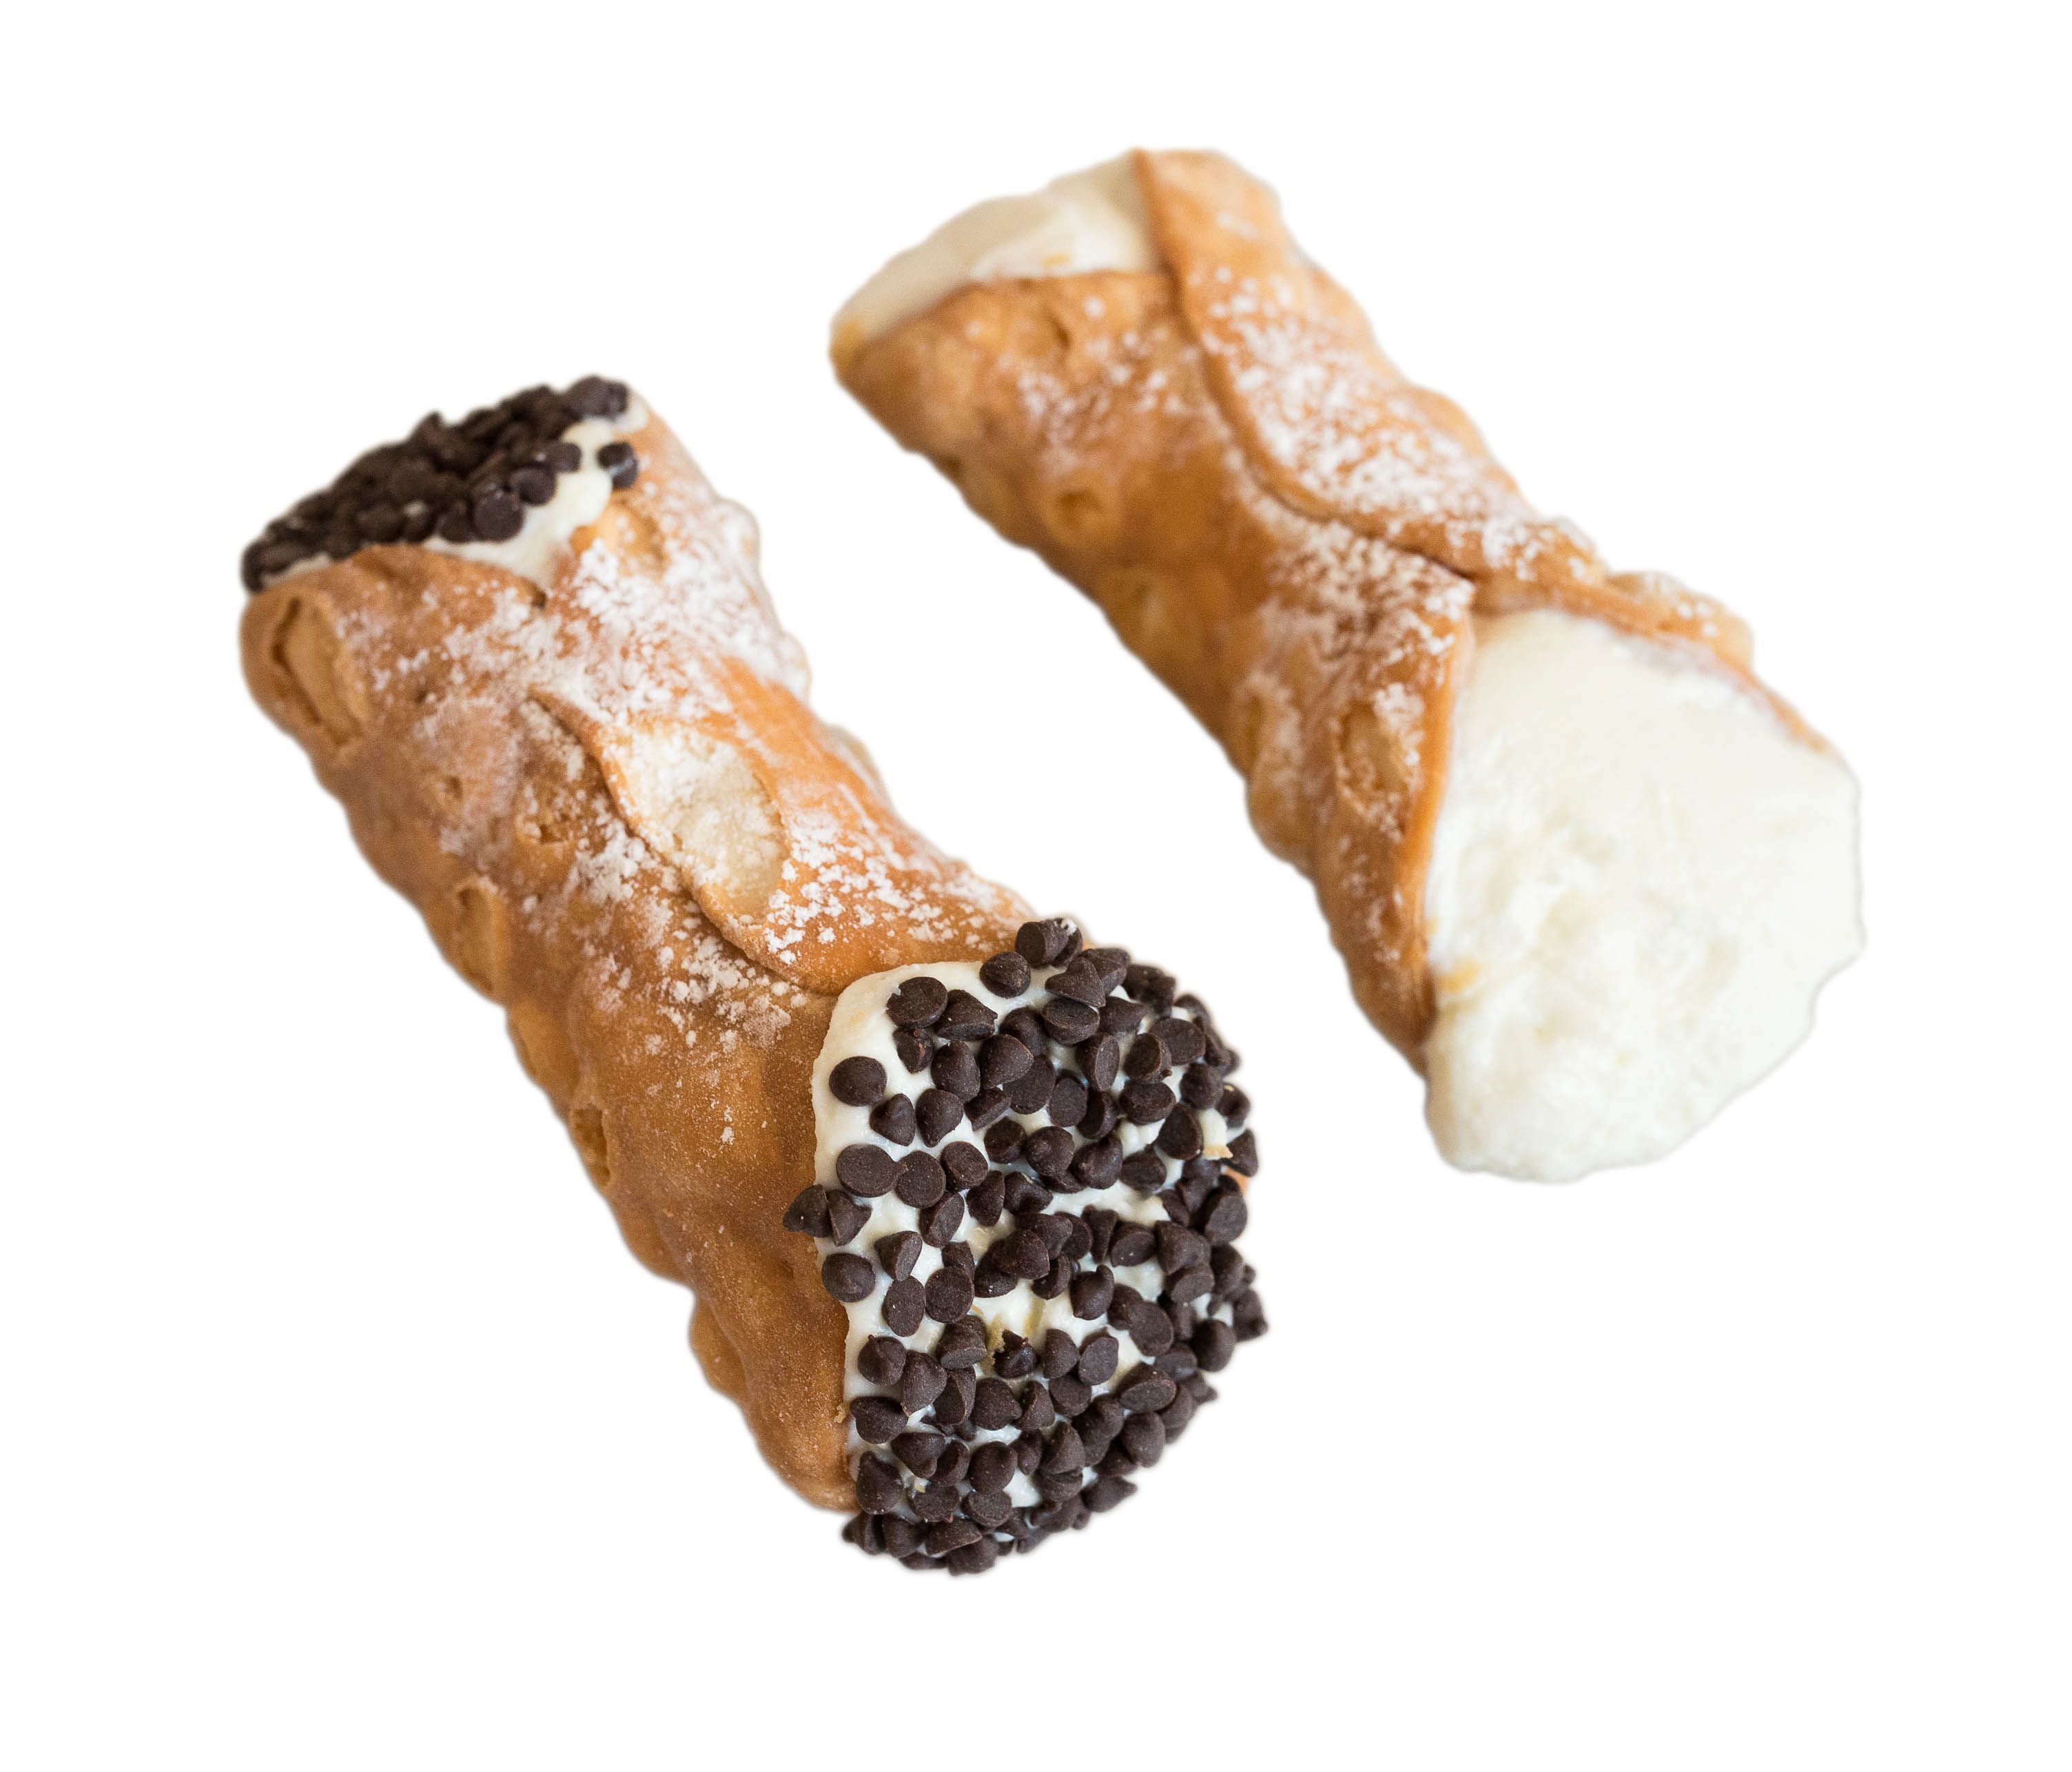 Take the Cannoli: One Pastry's Rise From Sicilian Treat to Iconic ...